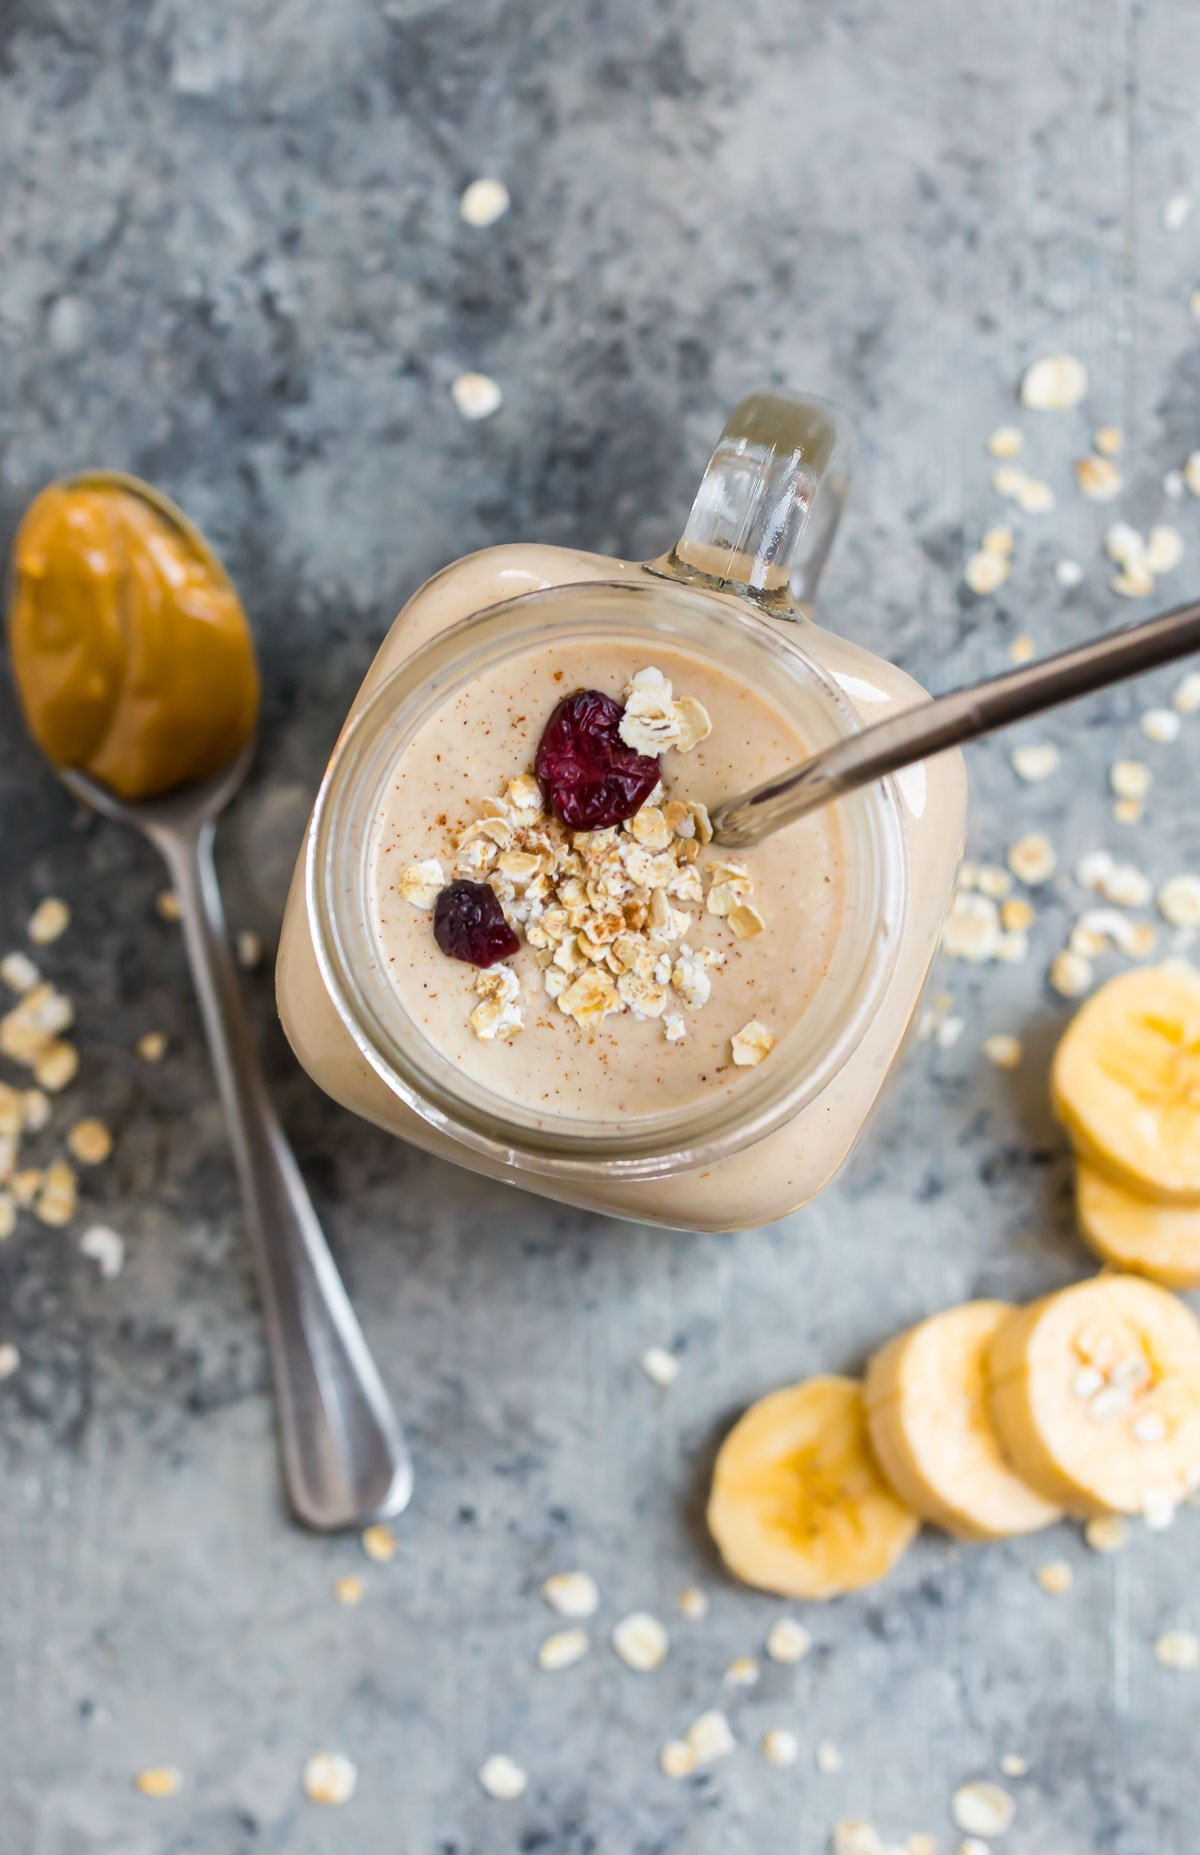 A glass filled with a filling, healthy breakfast drink